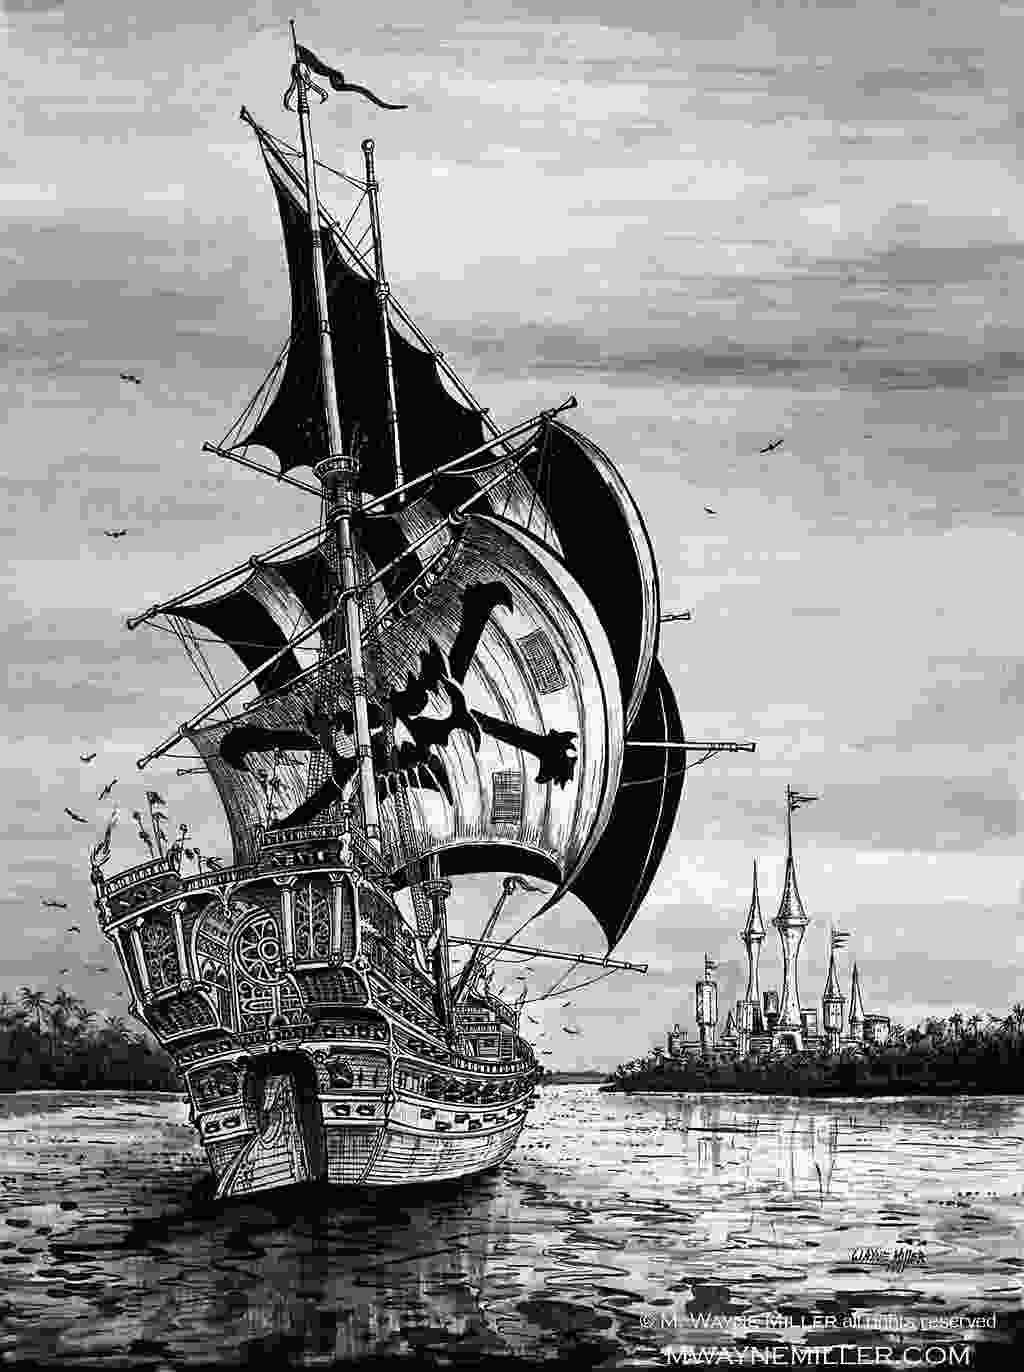 drawing of pirate ship pirate ship by gjsx51 on deviantart